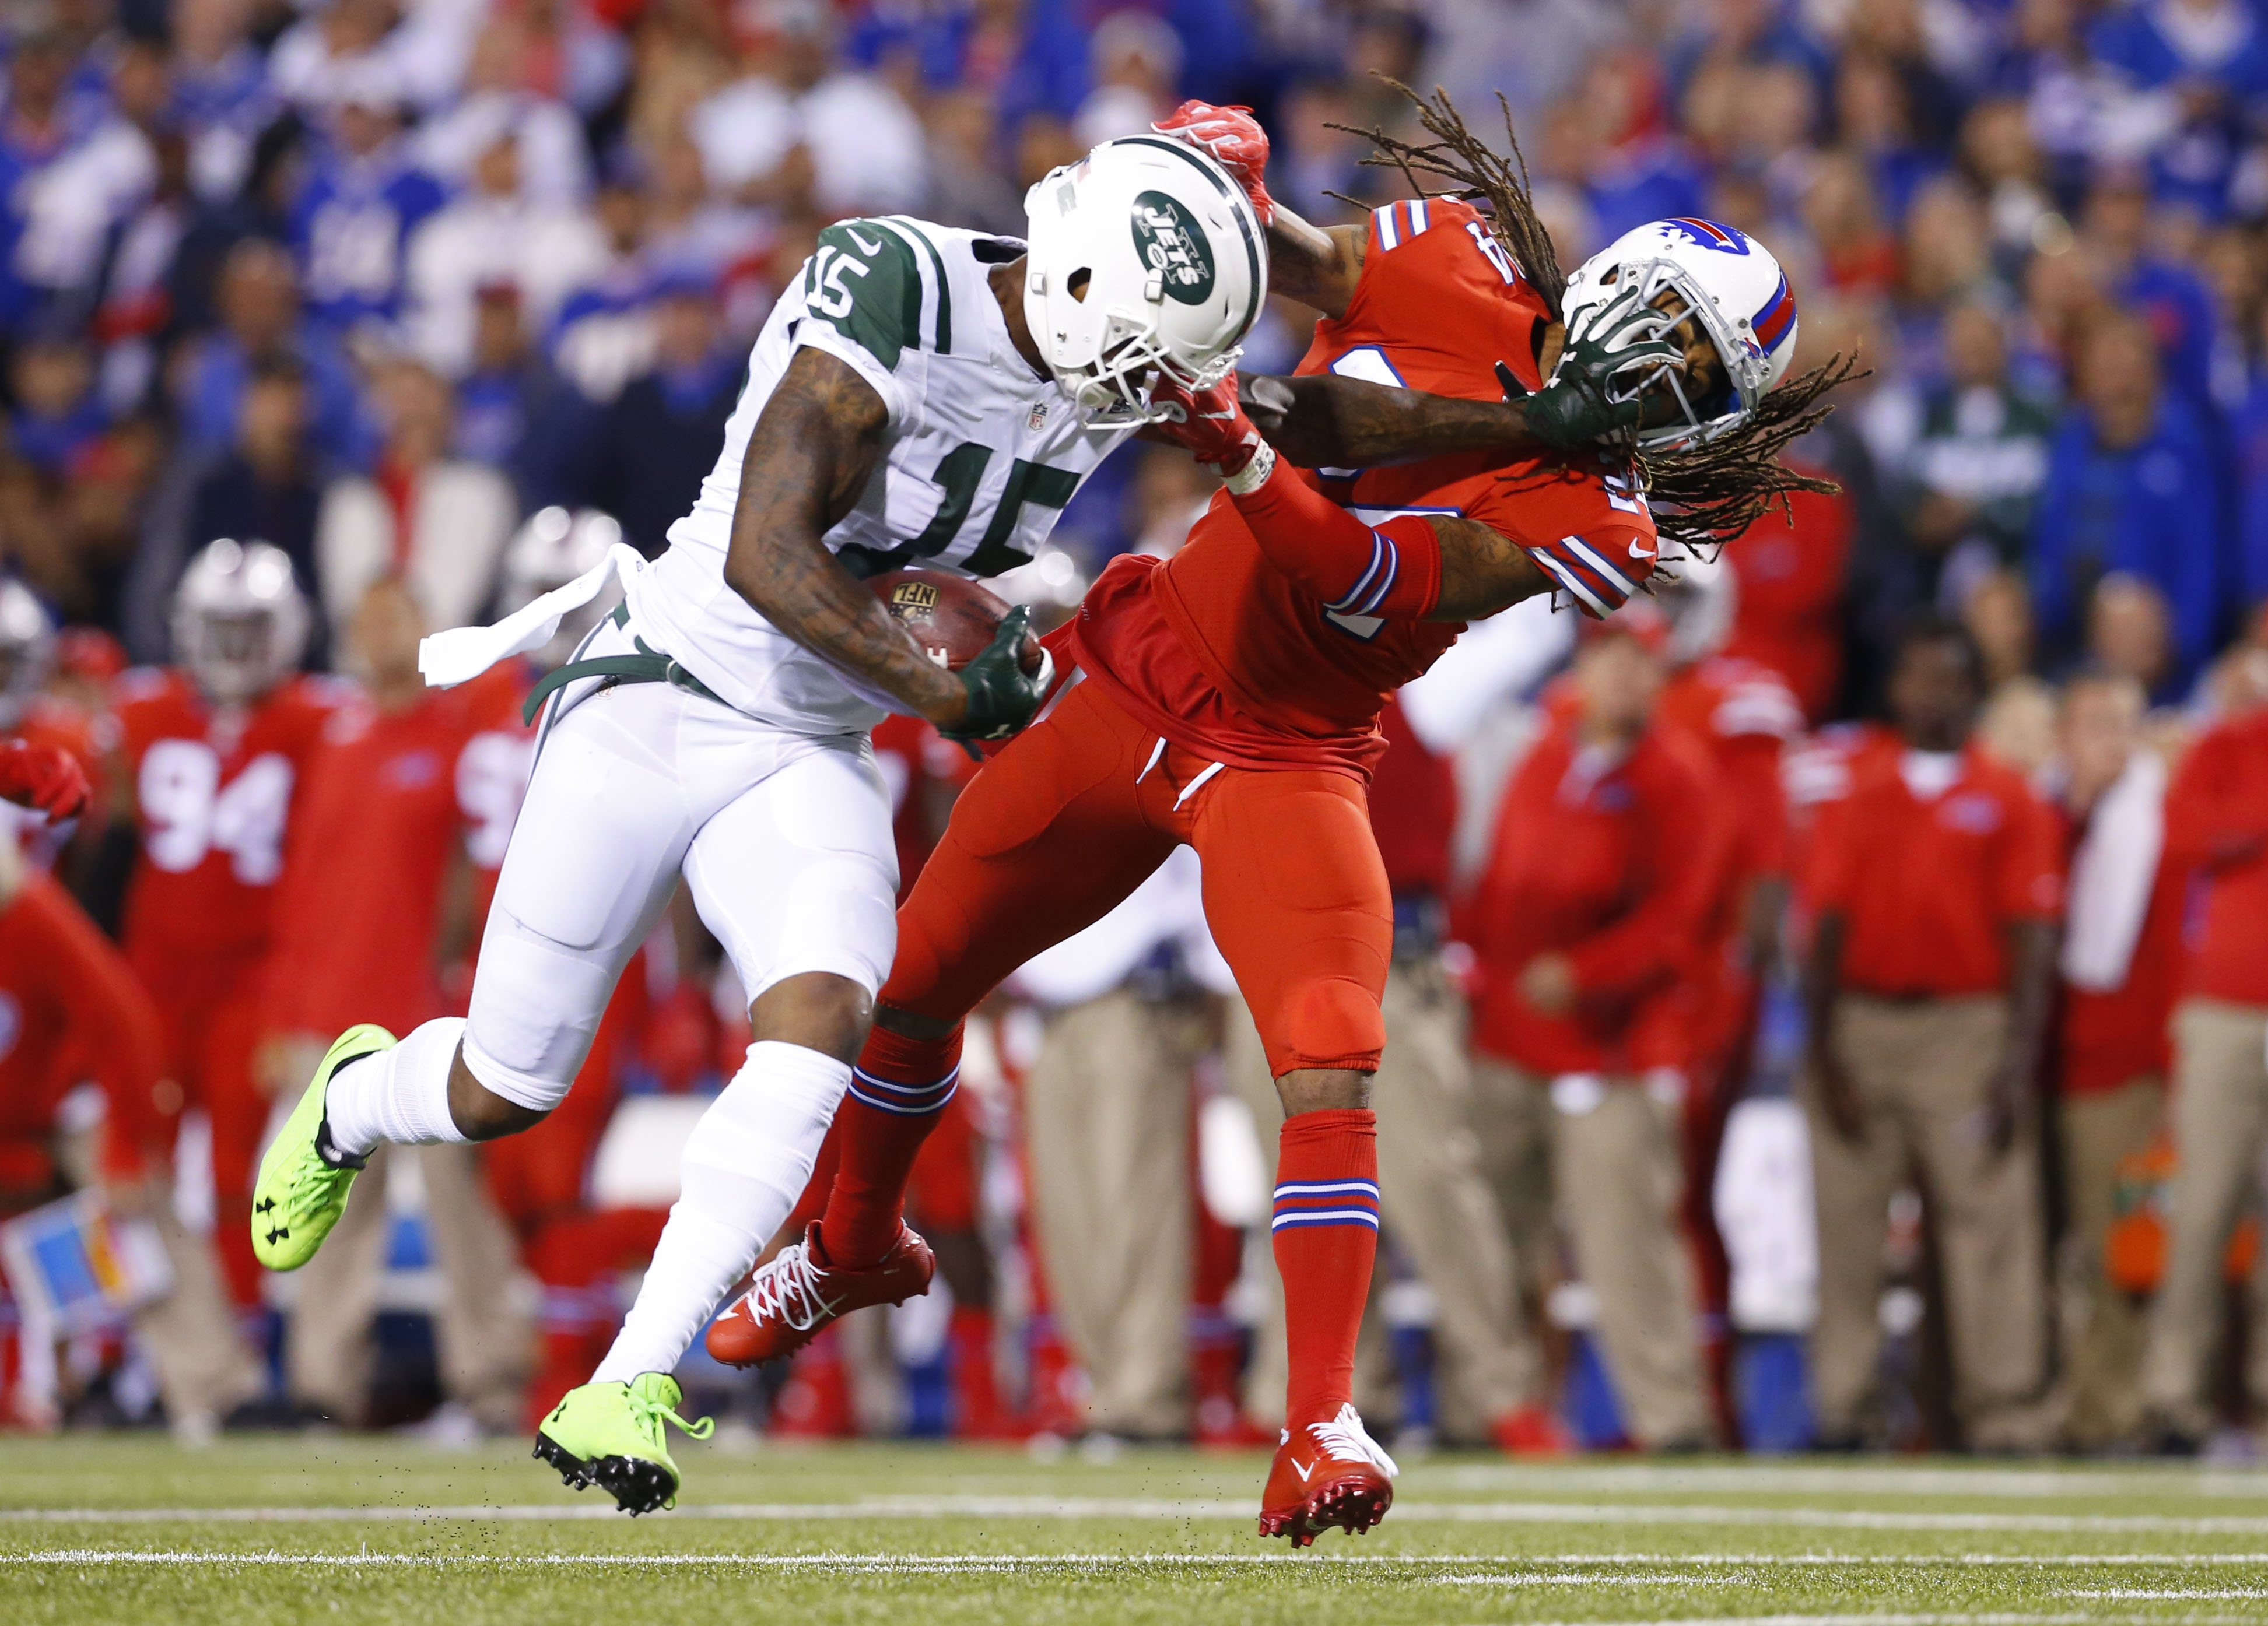 Bills cornerback Stephon Gilmore, right, wraps up New York Jets wide receiver Brandon Marshall during the first quarter at New Era Field Thursday.